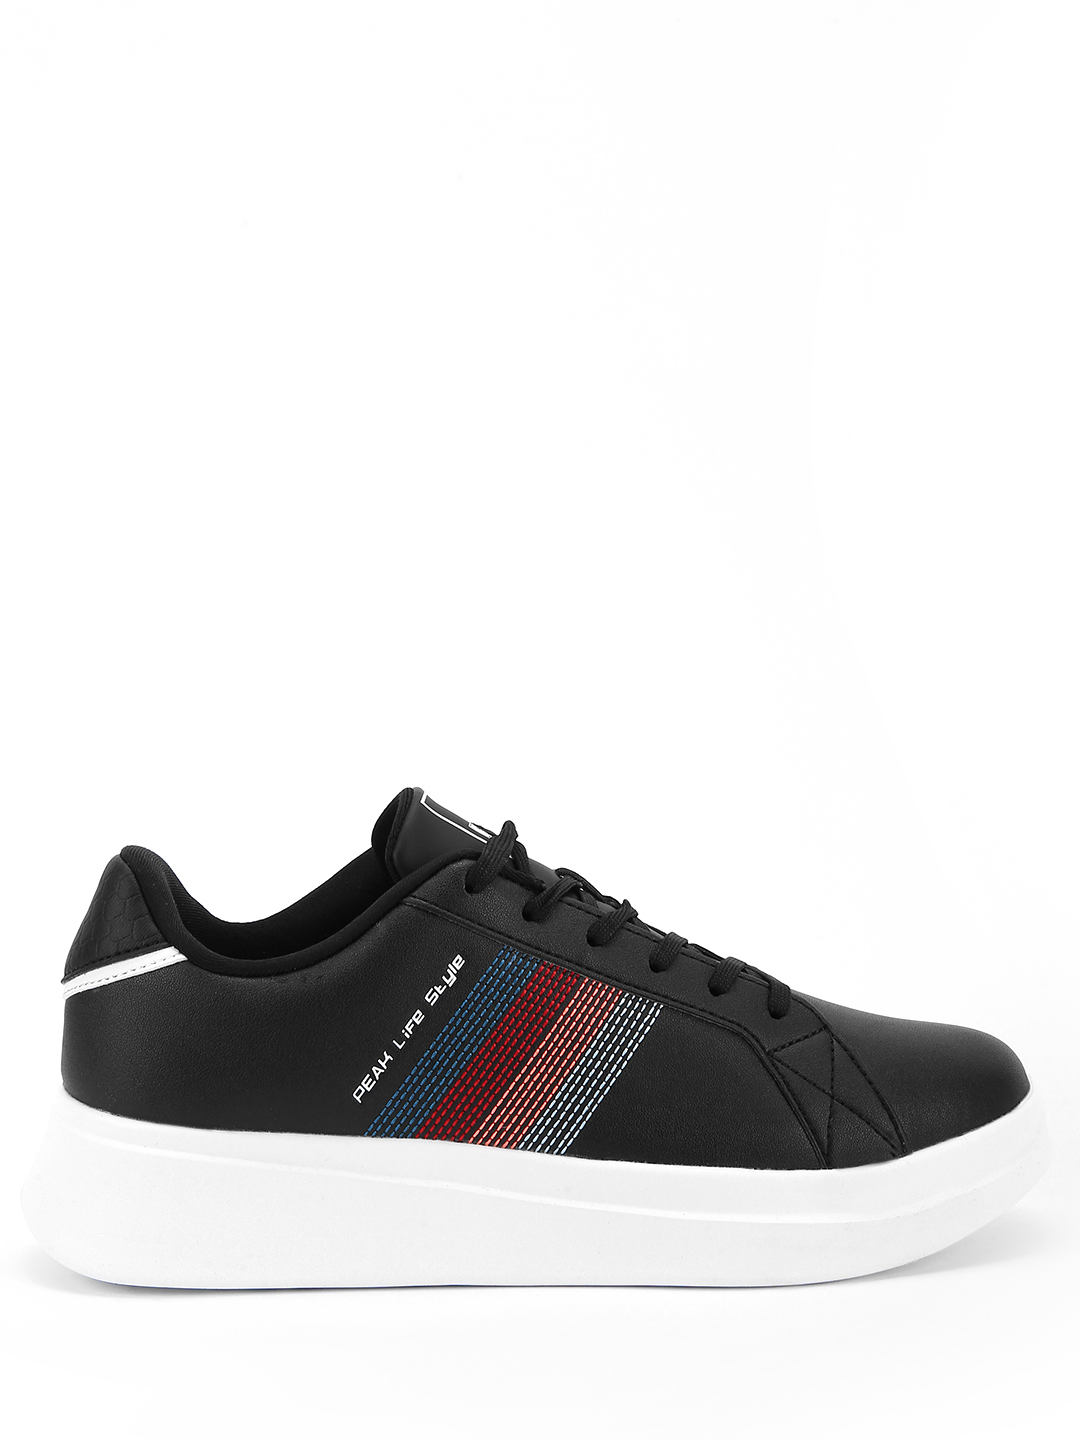 Peak Black Multi Colour Knitted Panel Sneakers 1